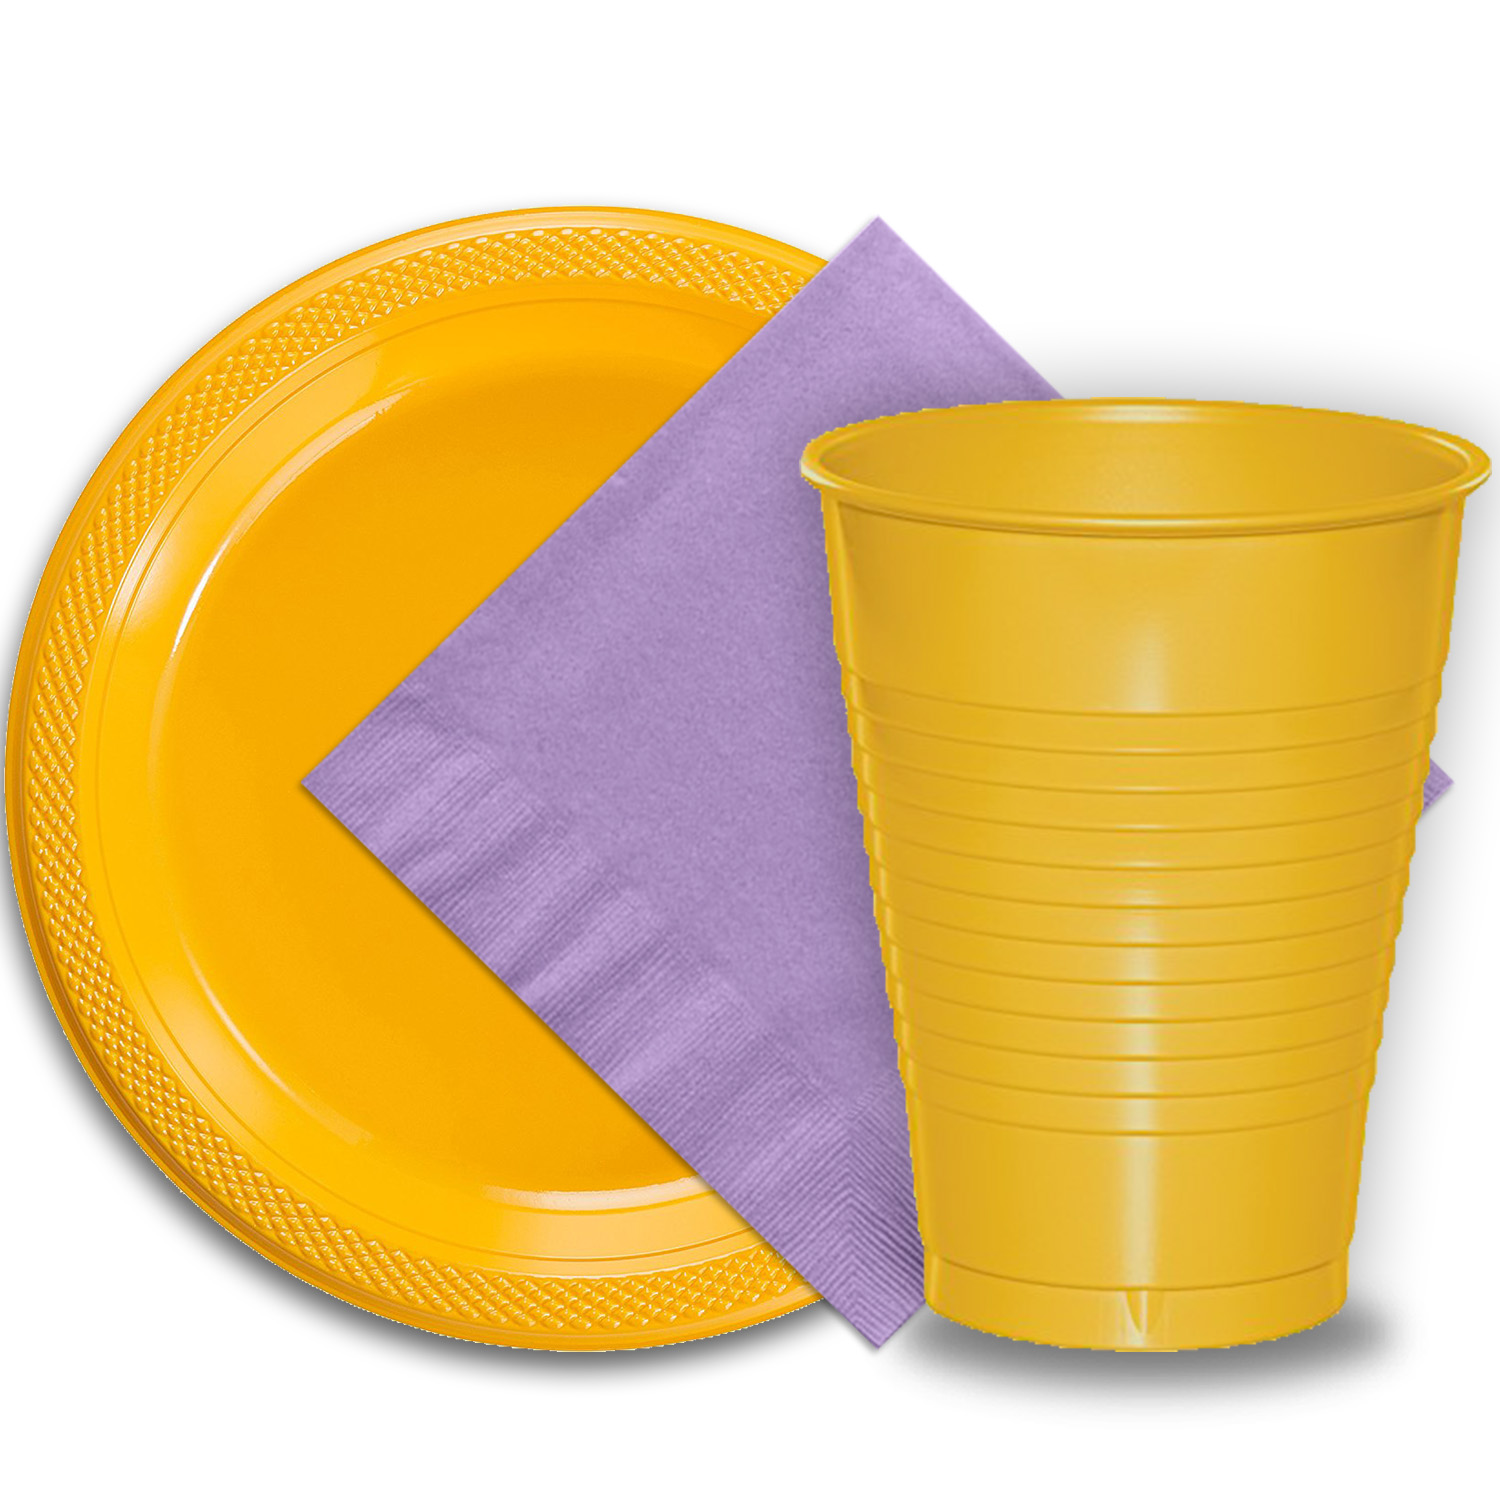 "50 Yellow Plastic Plates (9""), 50 Yellow Plastic Cups (12 oz.), and 50 Lavender Paper Napkins, Dazzelling Colored Disposable Party Supplies Tableware Set for Fifty Guests."